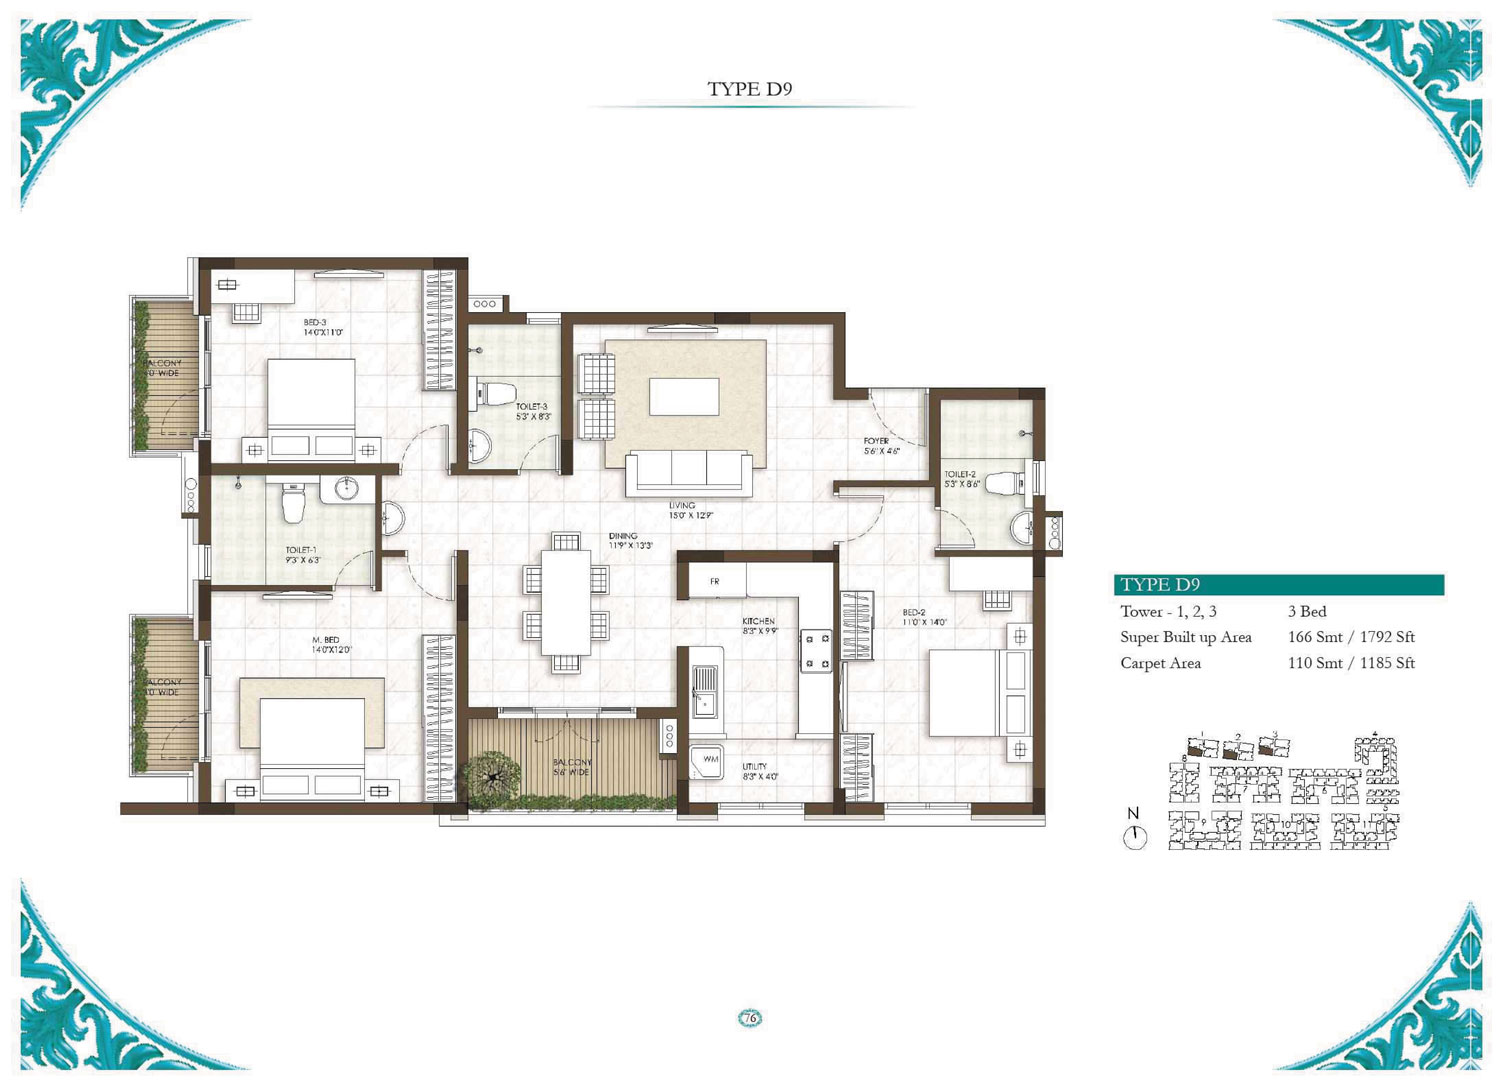 Type D9 - 3 Bed - 1792 Sq Ft